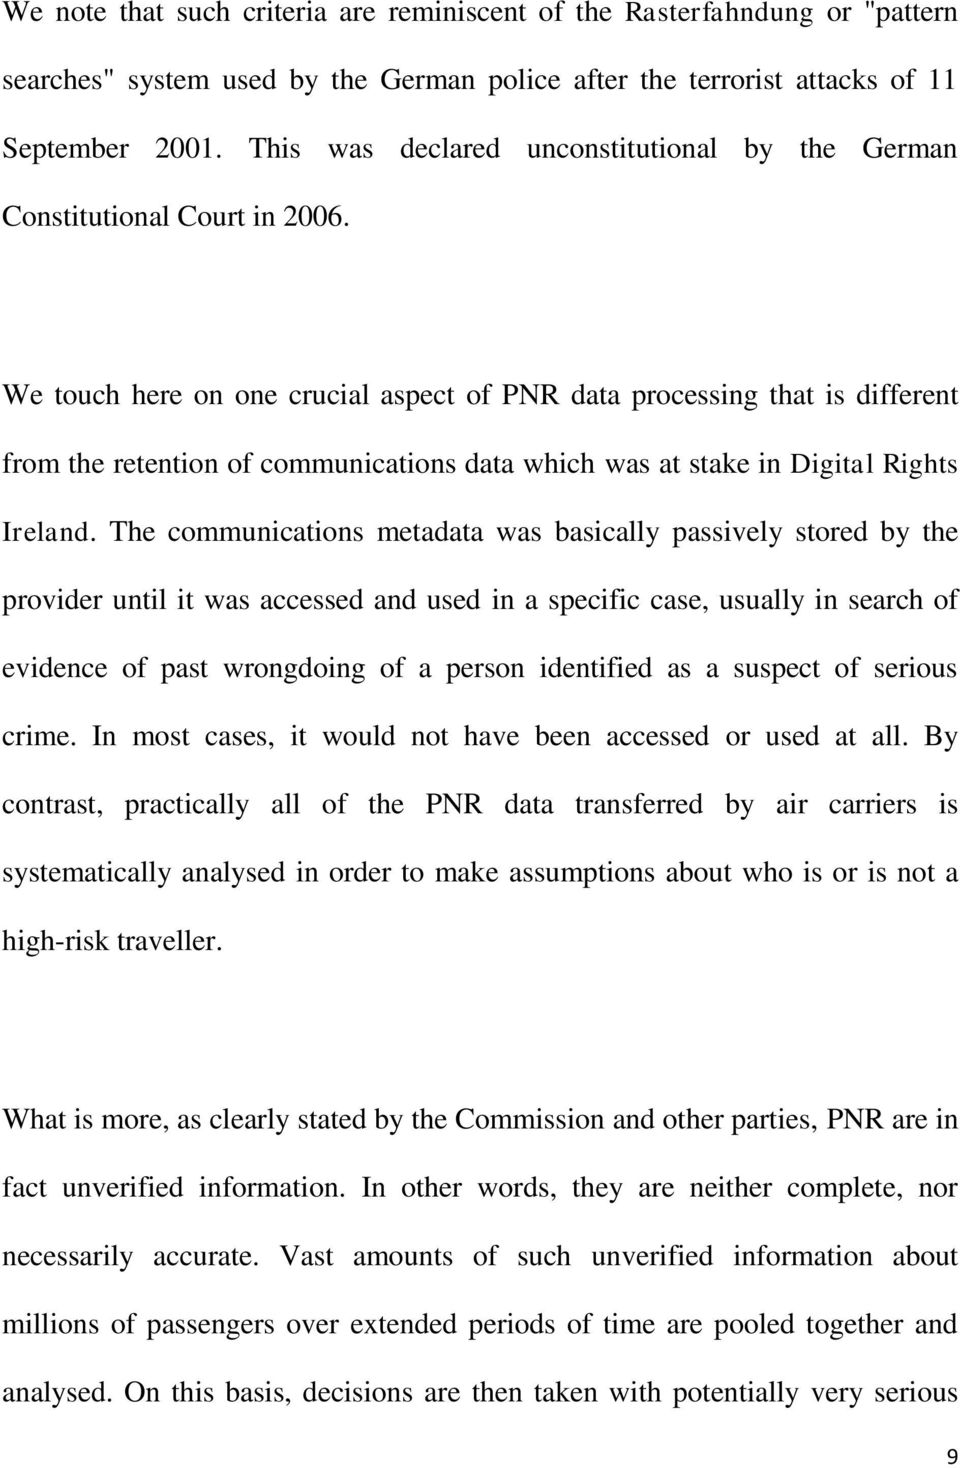 We touch here on one crucial aspect of PNR data processing that is different from the retention of communications data which was at stake in Digital Rights Ireland.